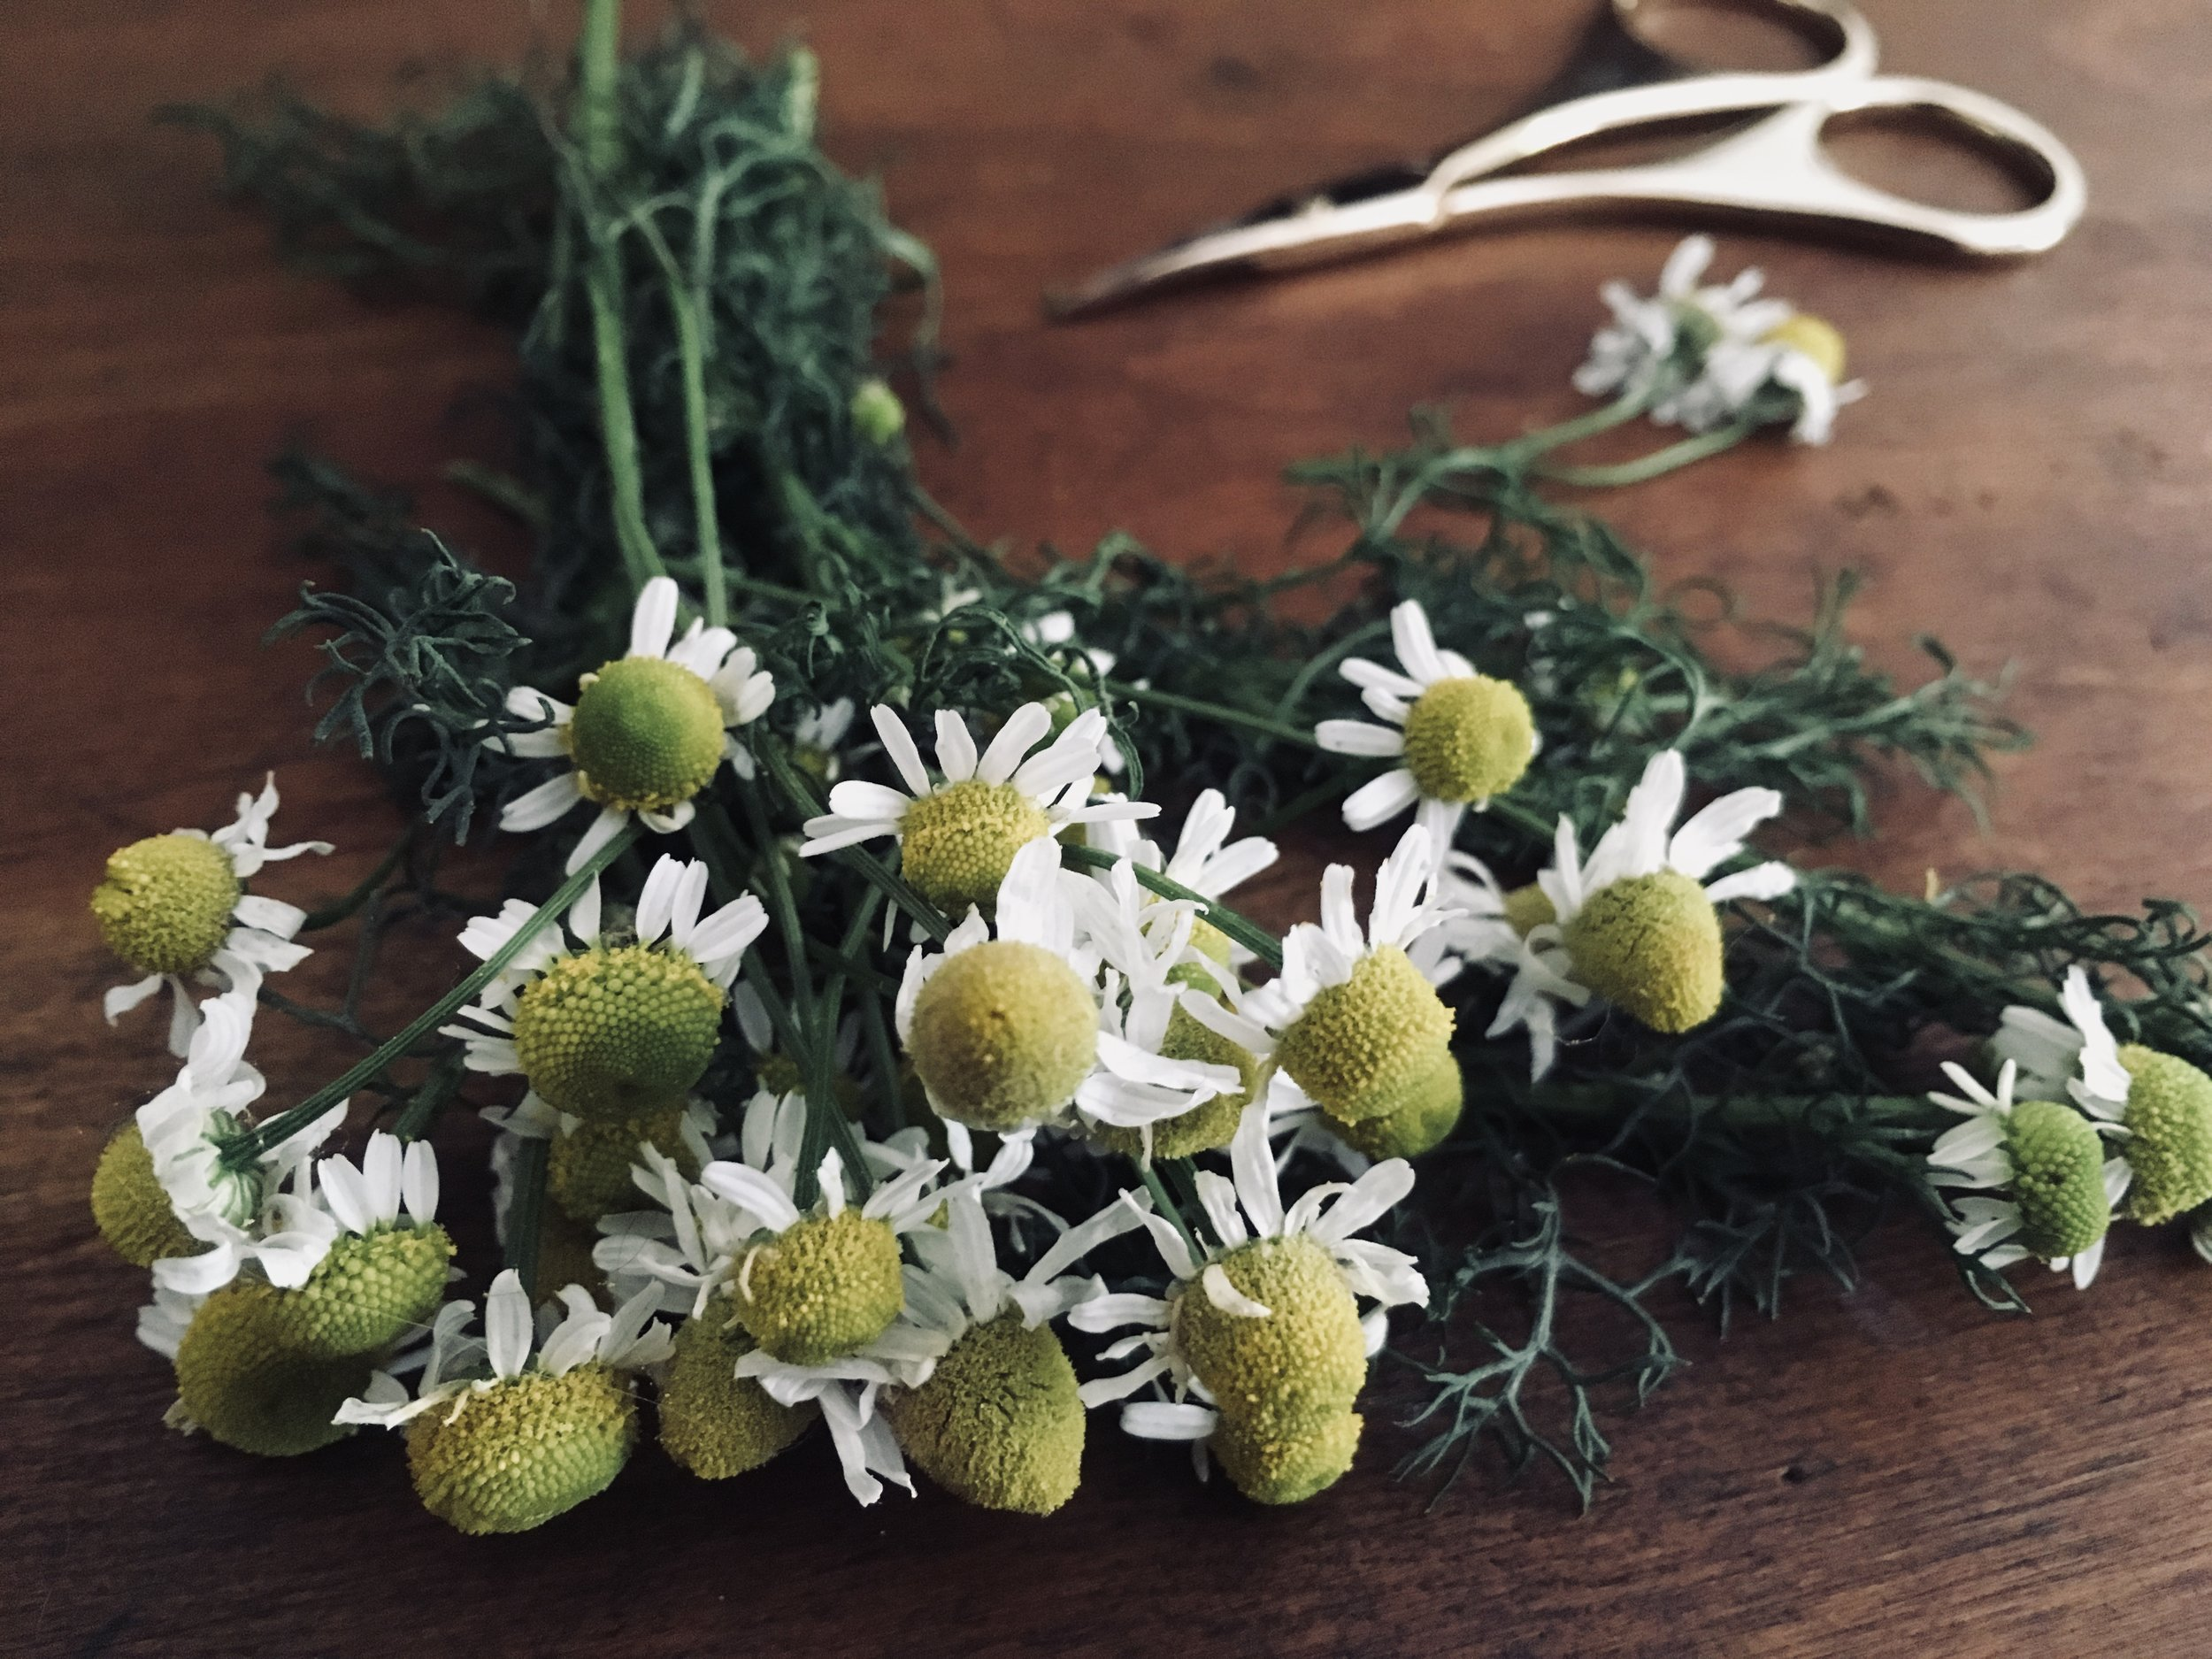 claire-beauchamp-outlander-cocktail-chamomile.jpg